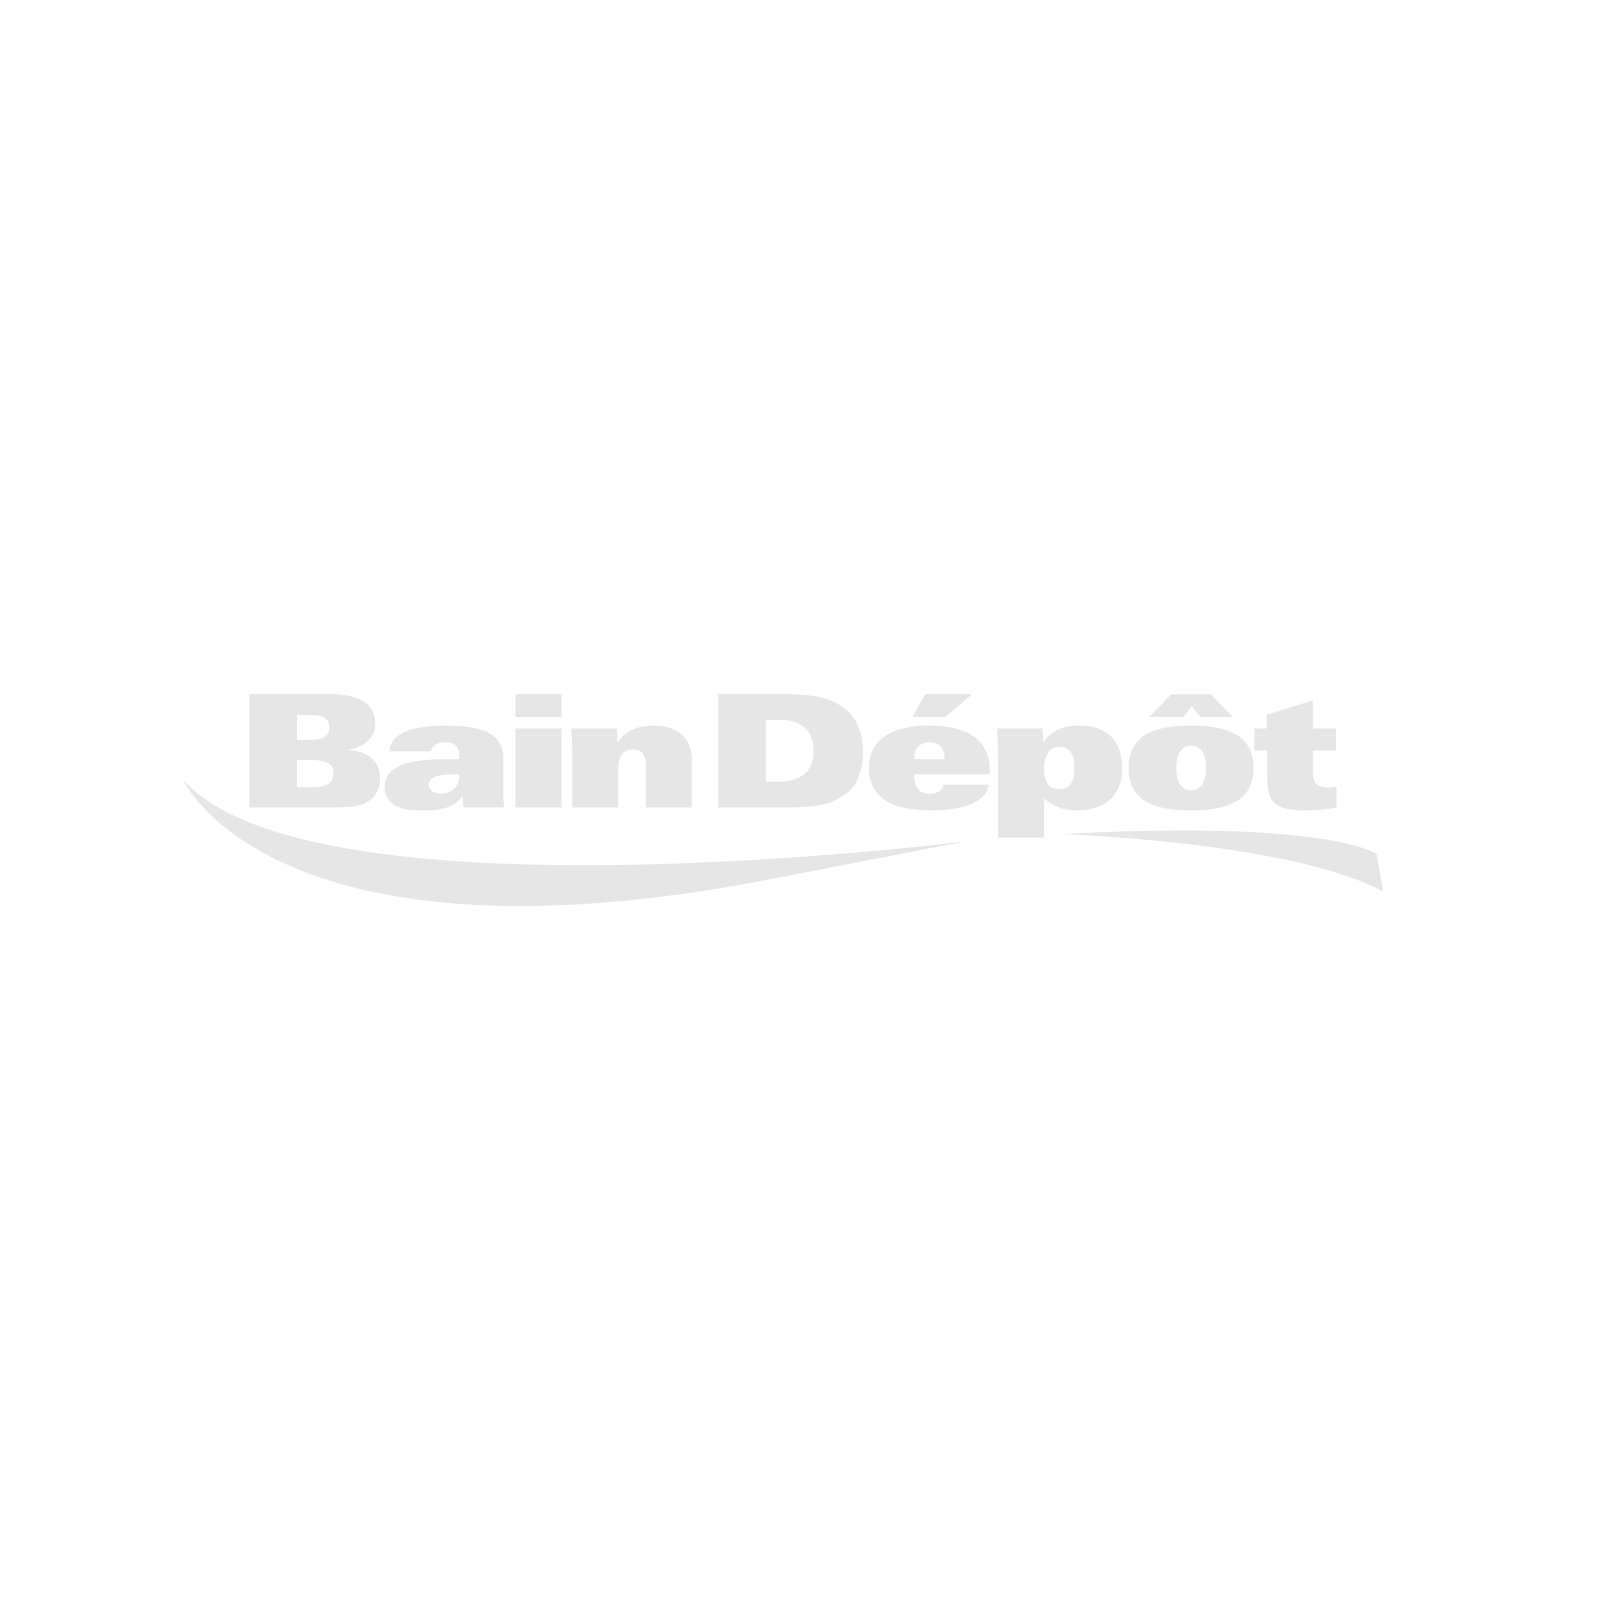 "30"" x 34.5"" Two-door base kitchen cabinet"